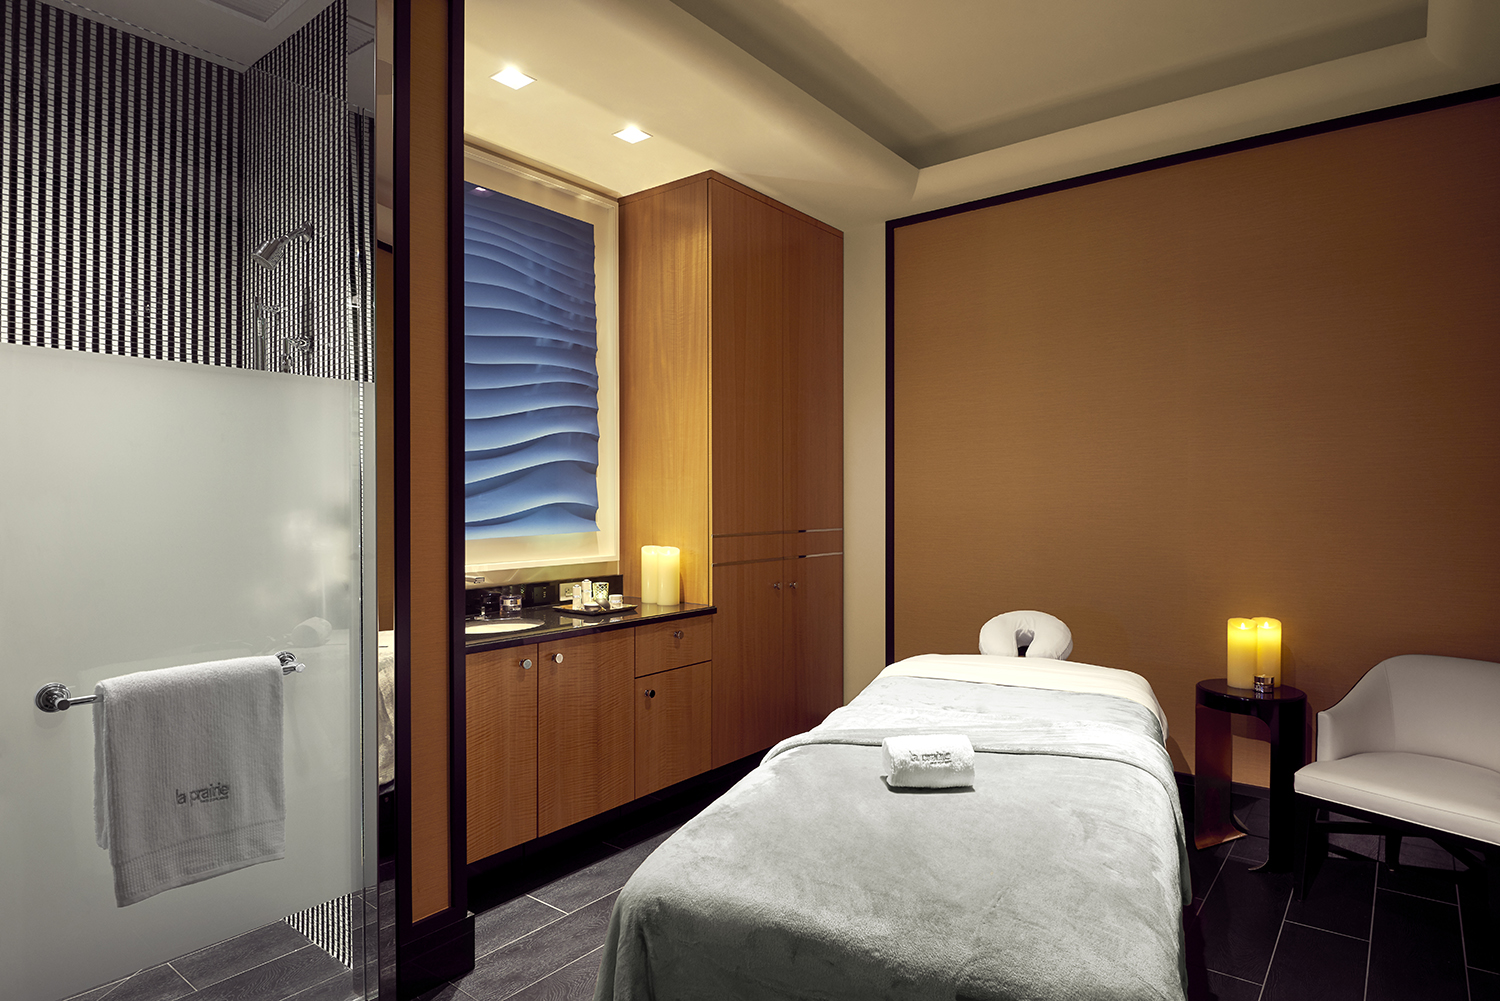 Spa Treatment Room resized.jpg